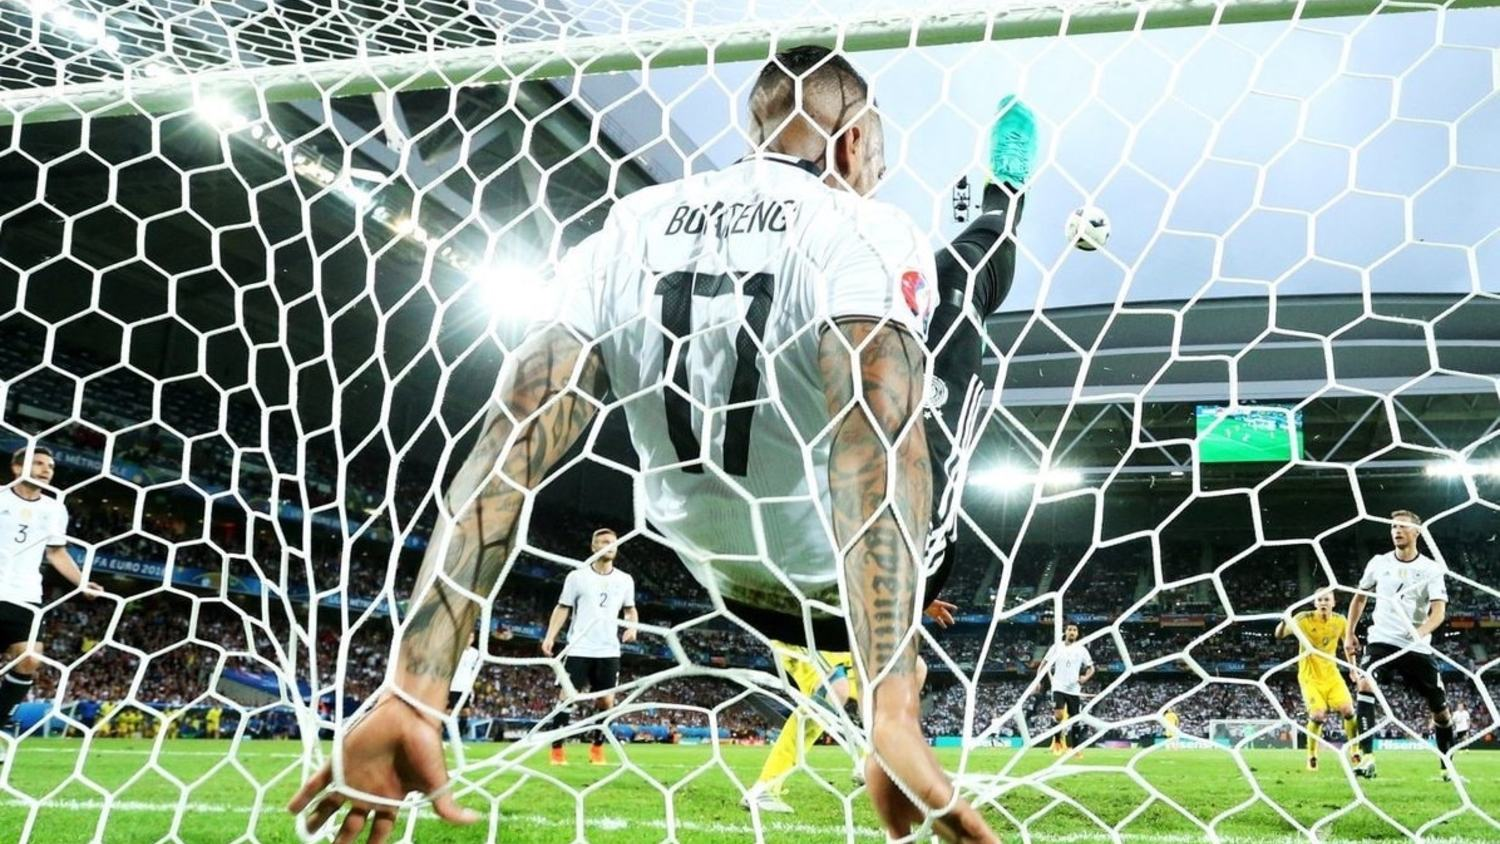 Euro 2016 Group C & D Roundup: Boateng's clearance & more